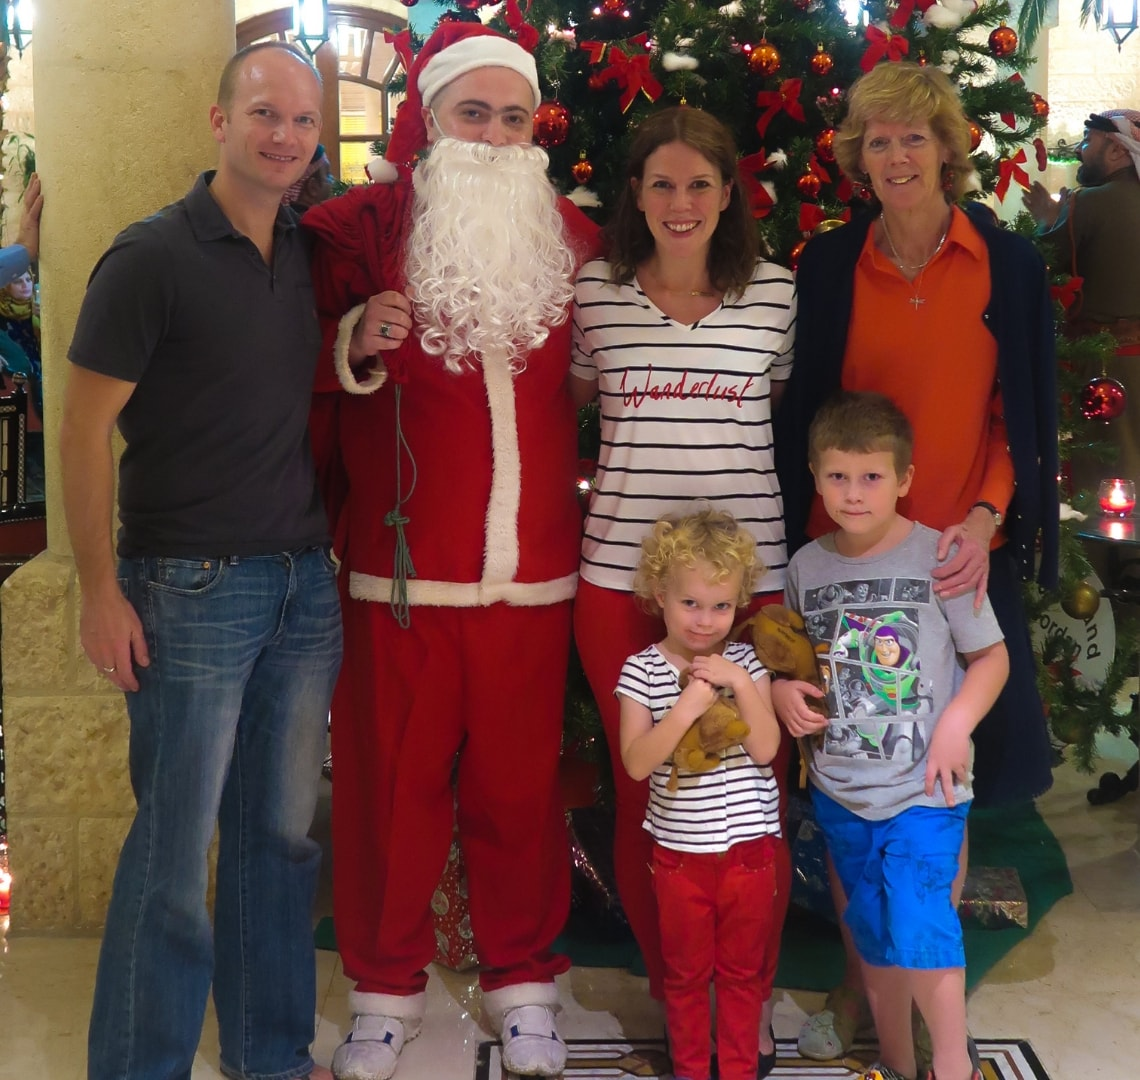 Normal Expat Christmas - Wanderlust family with Father Christmas in front of a Christmas tree